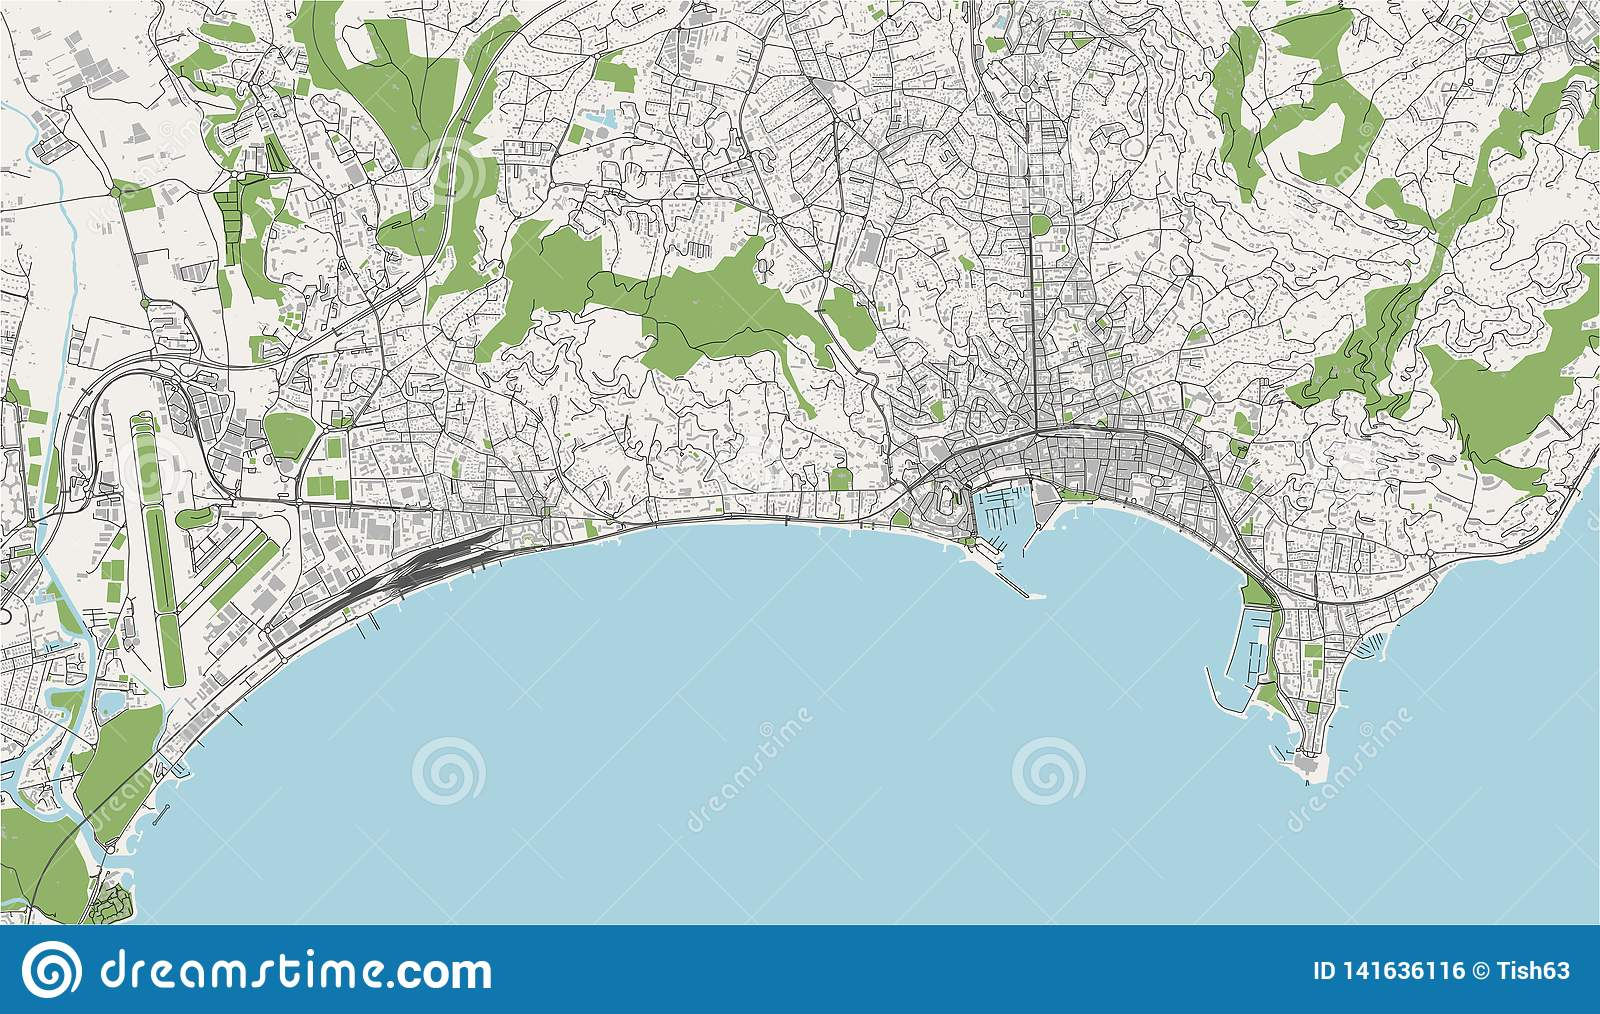 Map Of The City Of Cannes, France Stock Illustration - Illustration Cannes Map on